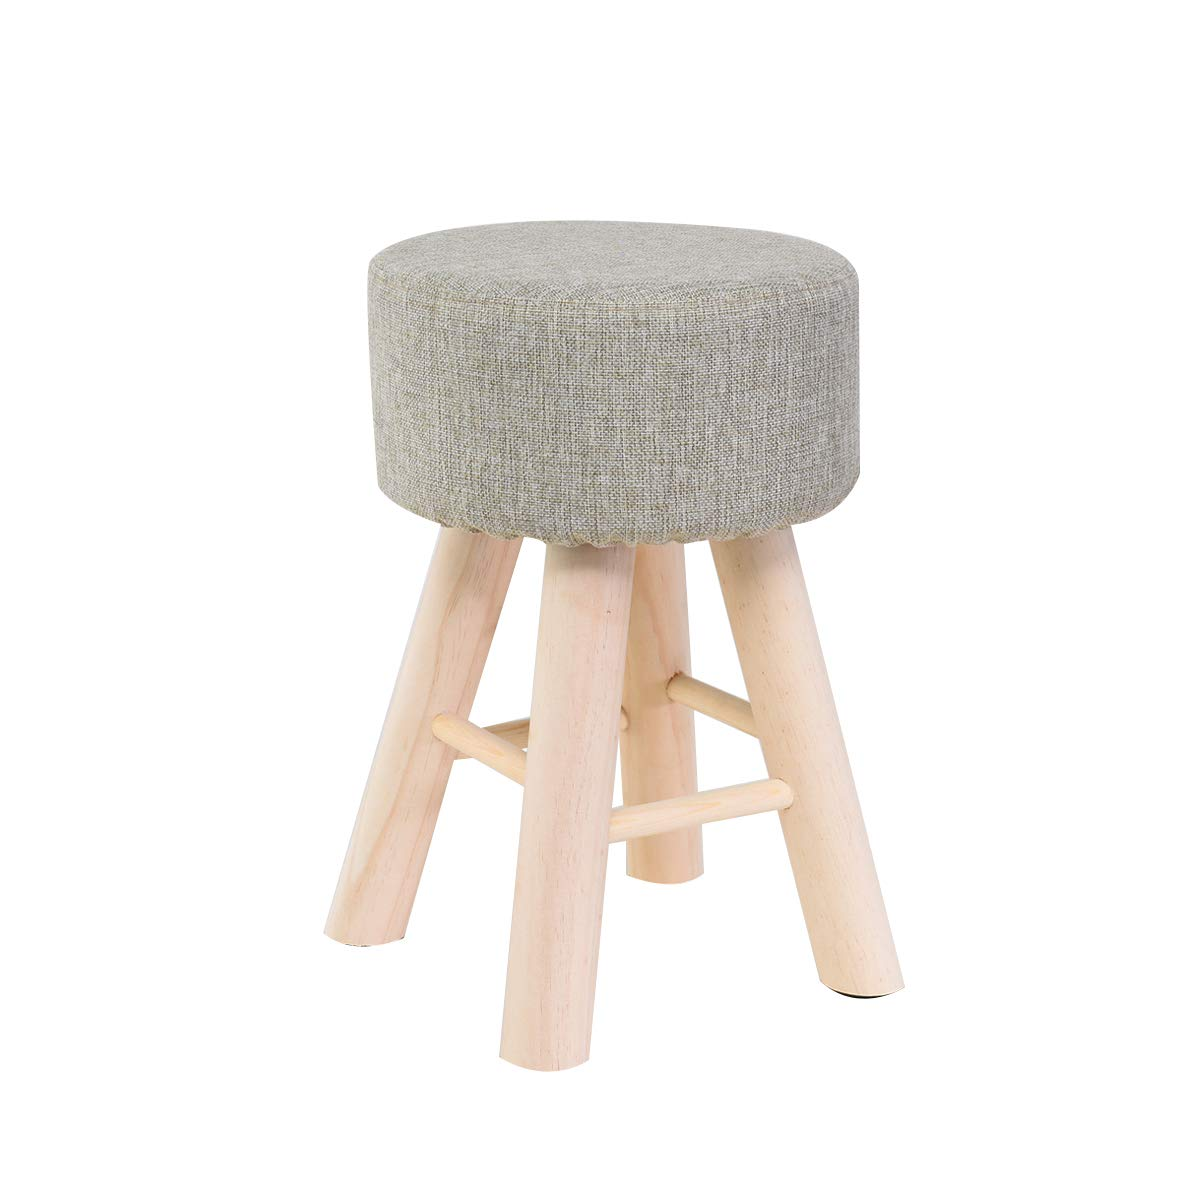 A Vanity Seat Stool Makeup Dressing Stool Solid Wood Small Stool Linen Change shoes Bench Living Room Kitchen Chair (Height 18.1in),b